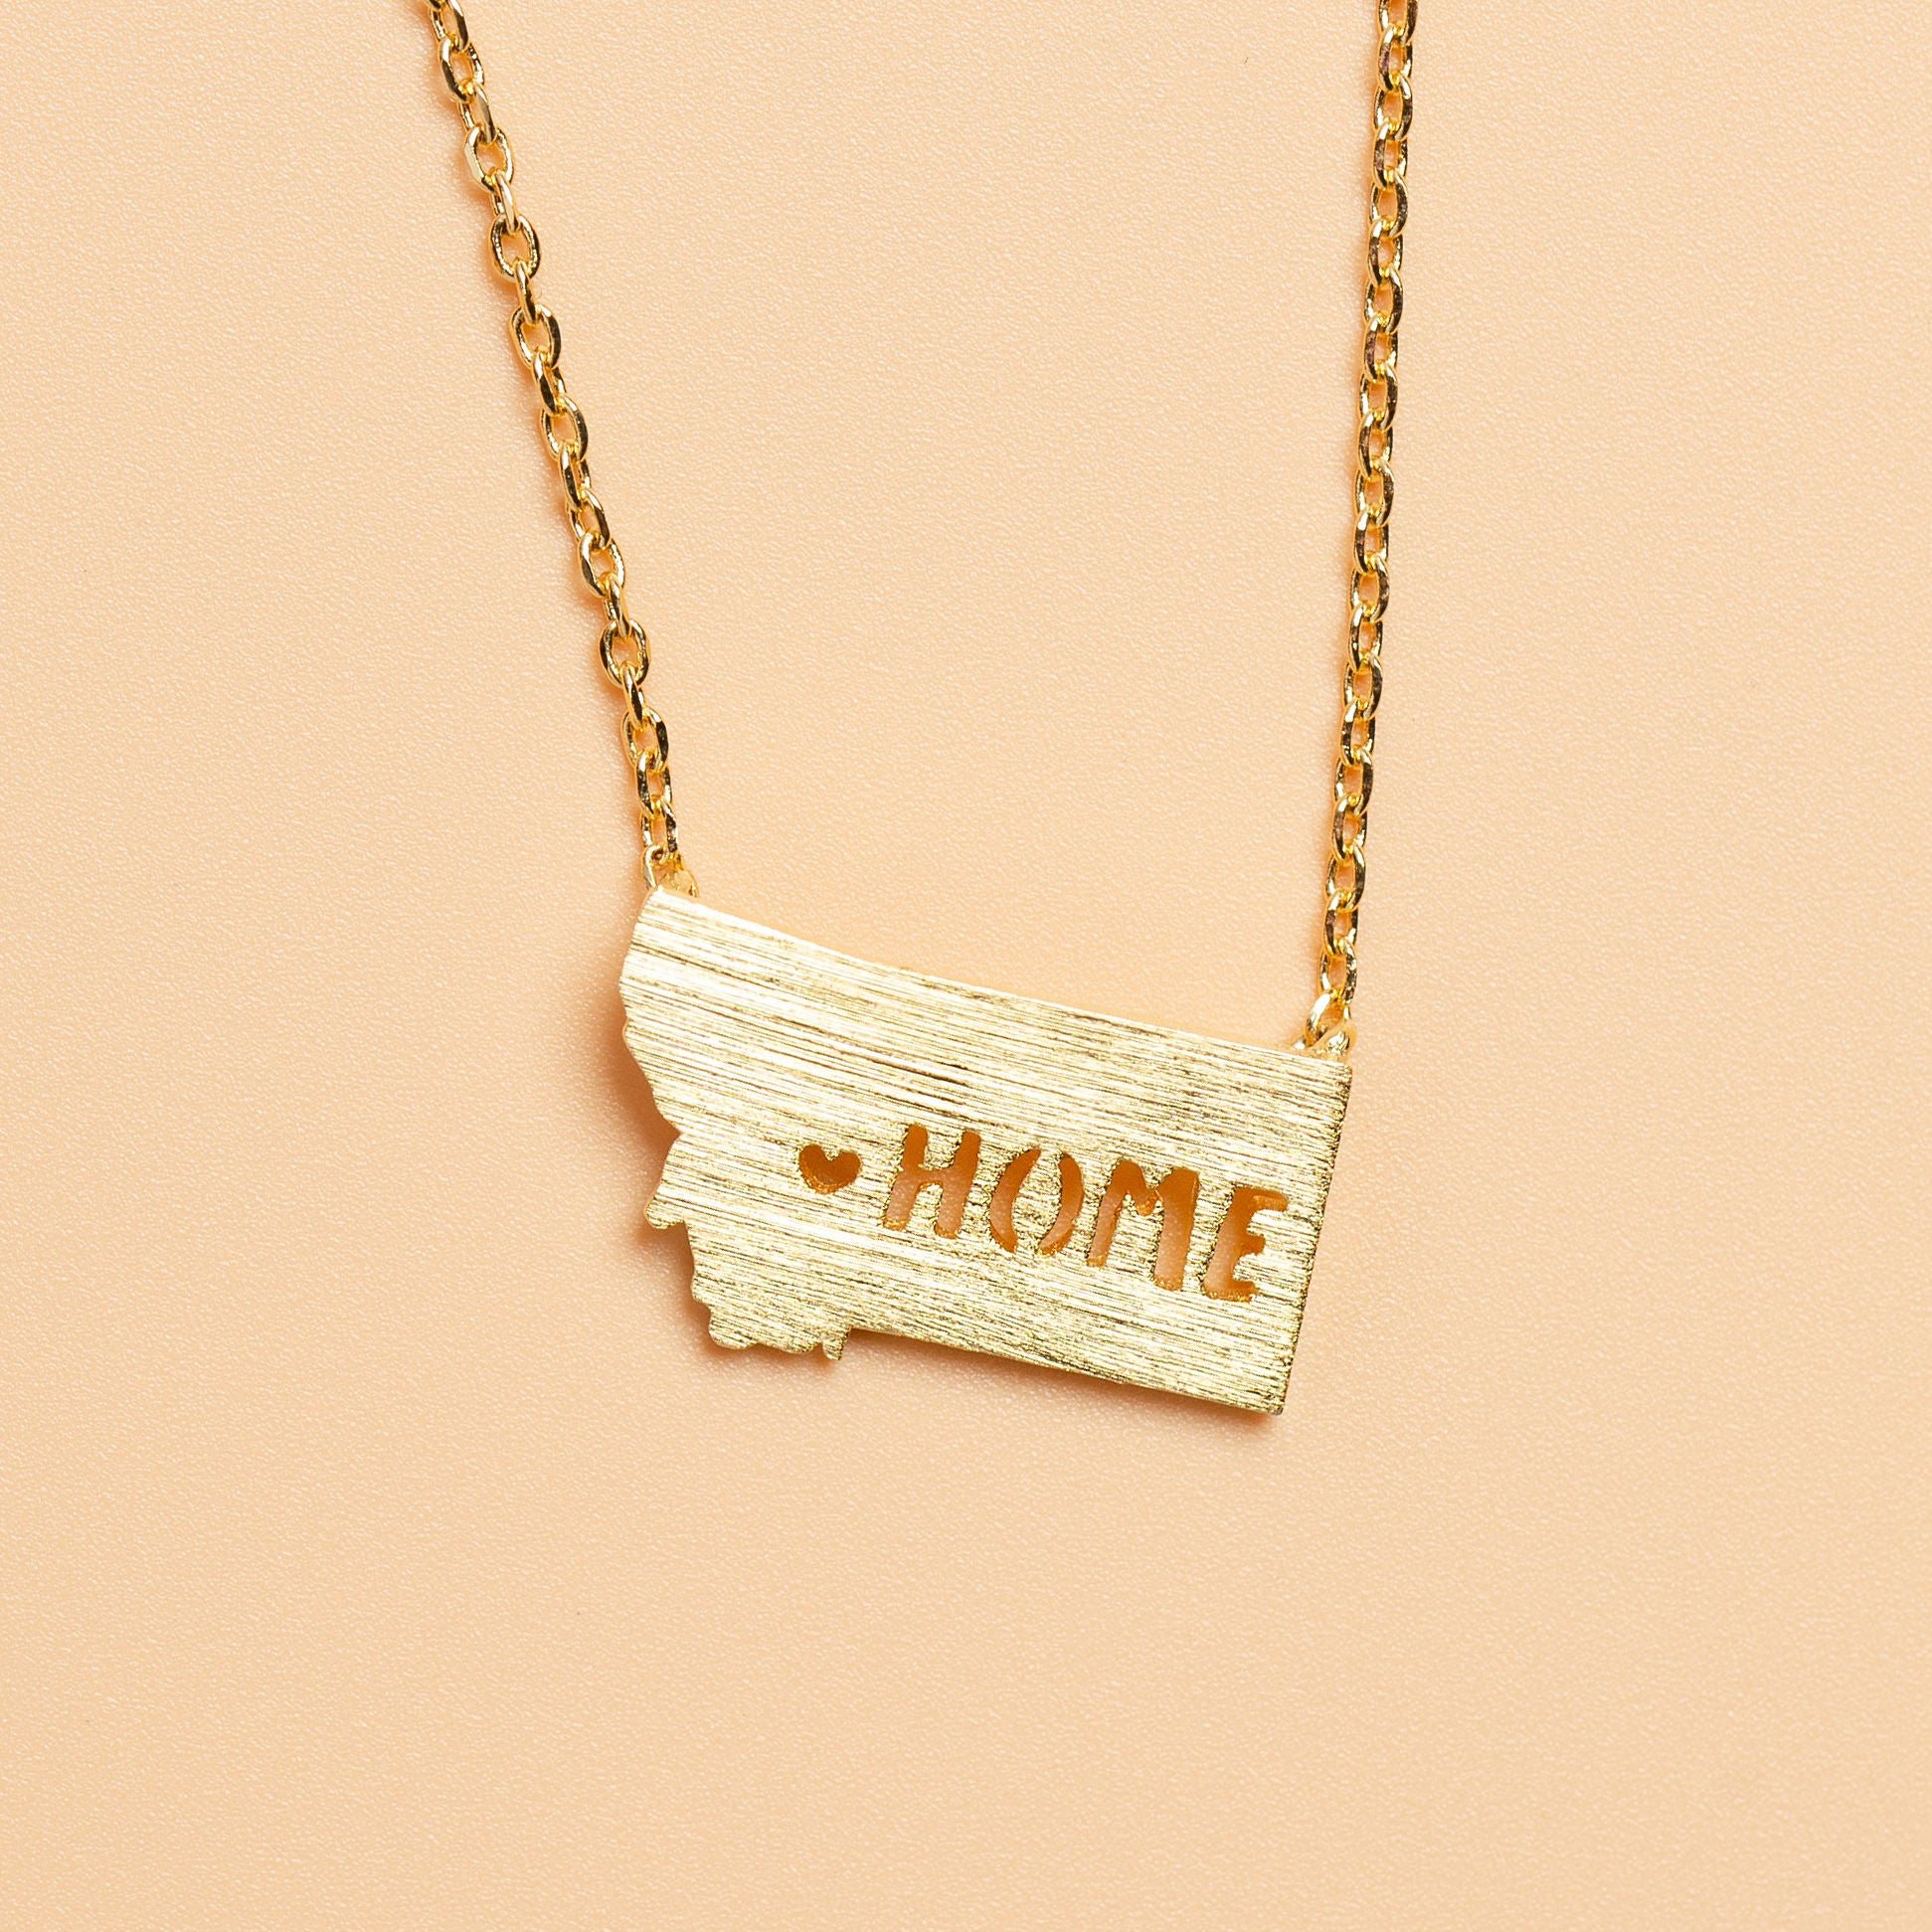 All Hearts Go Home Necklace in Gold